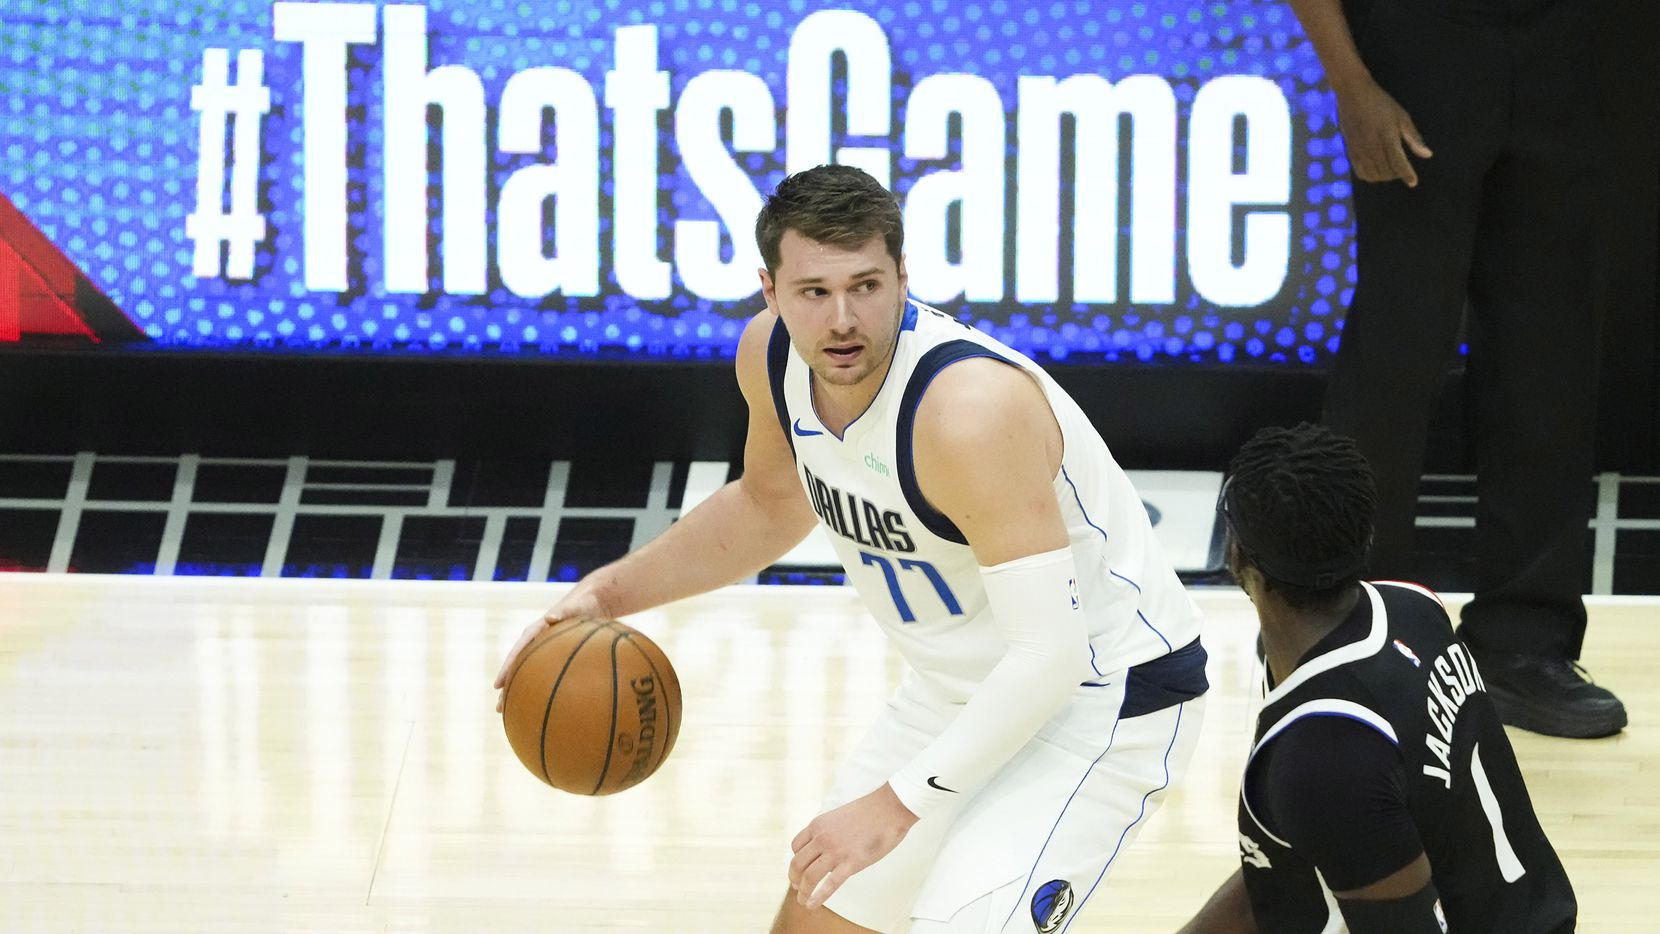 Dallas Mavericks guard Luka Doncic (77) works against LA Clippers guard Reggie Jackson (1) during the first quarter of Game 7 of an NBA playoff series at the Staples Center on Sunday, June 6, 2021, in Los Angeles.